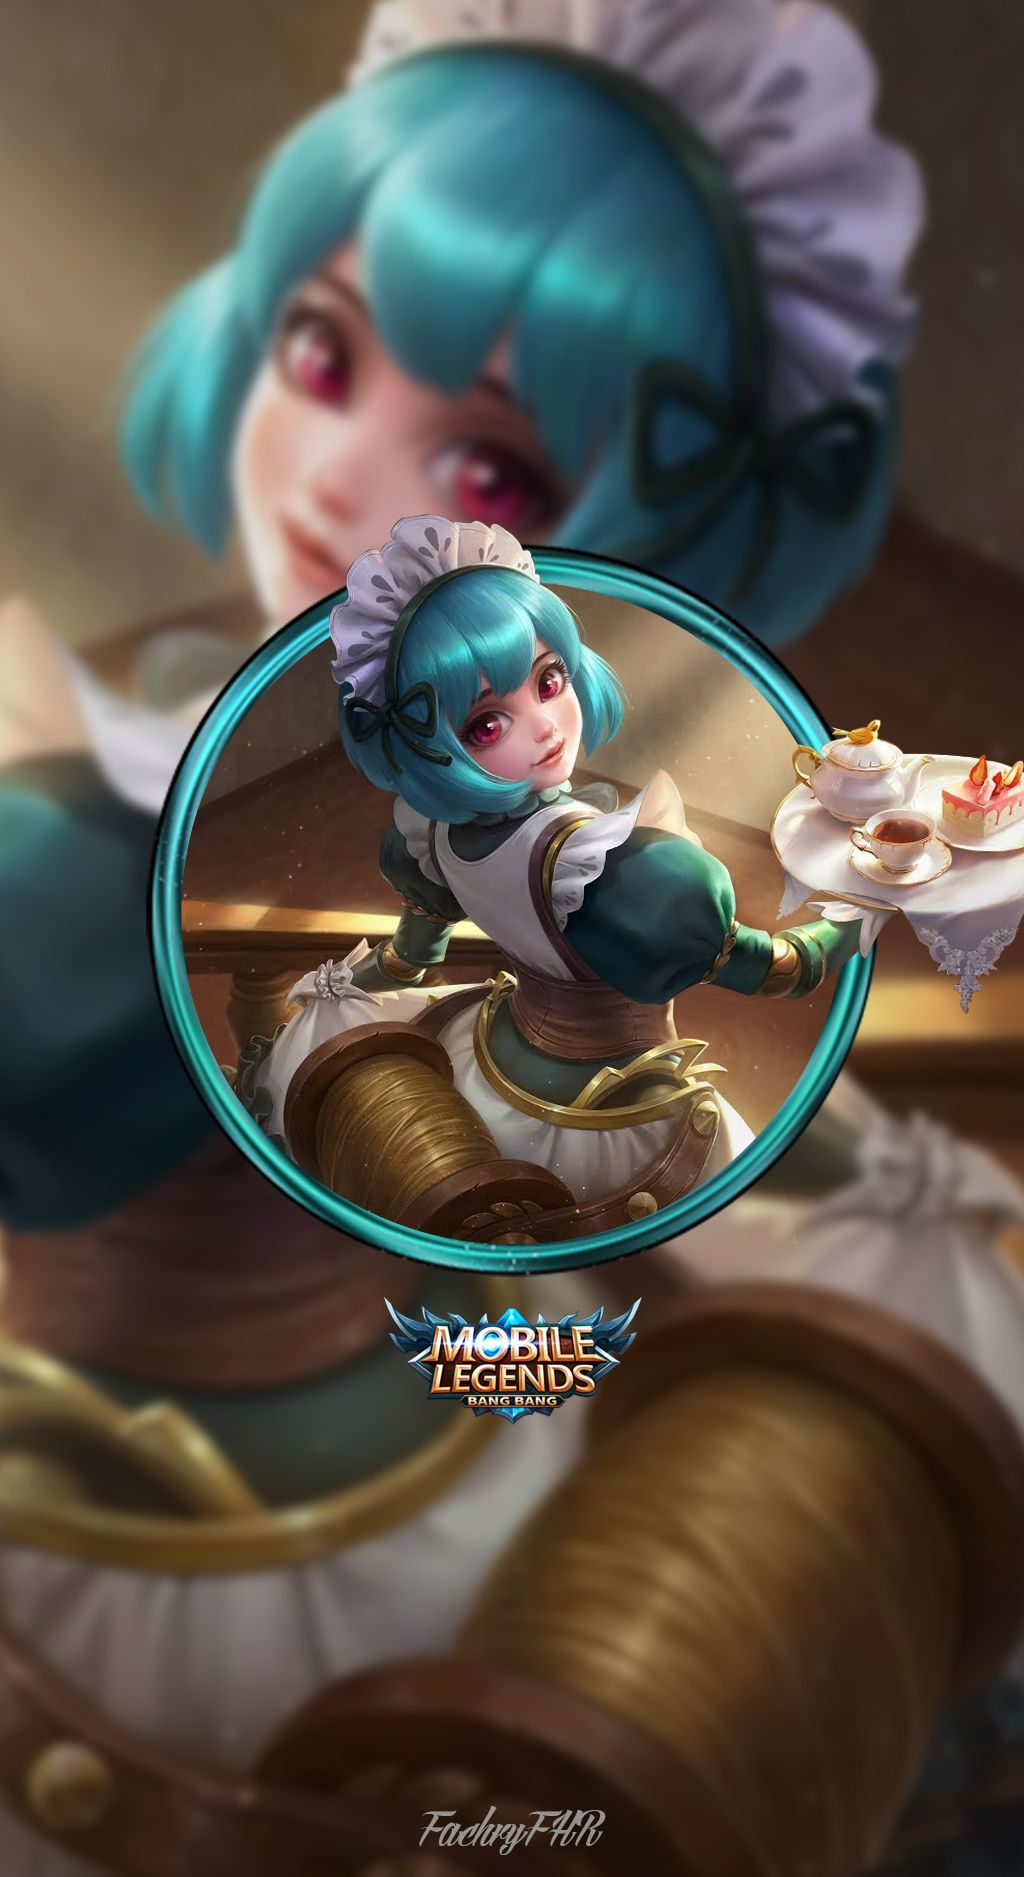 Pin by Aaron Dorantes on Mobile legends Pinterest